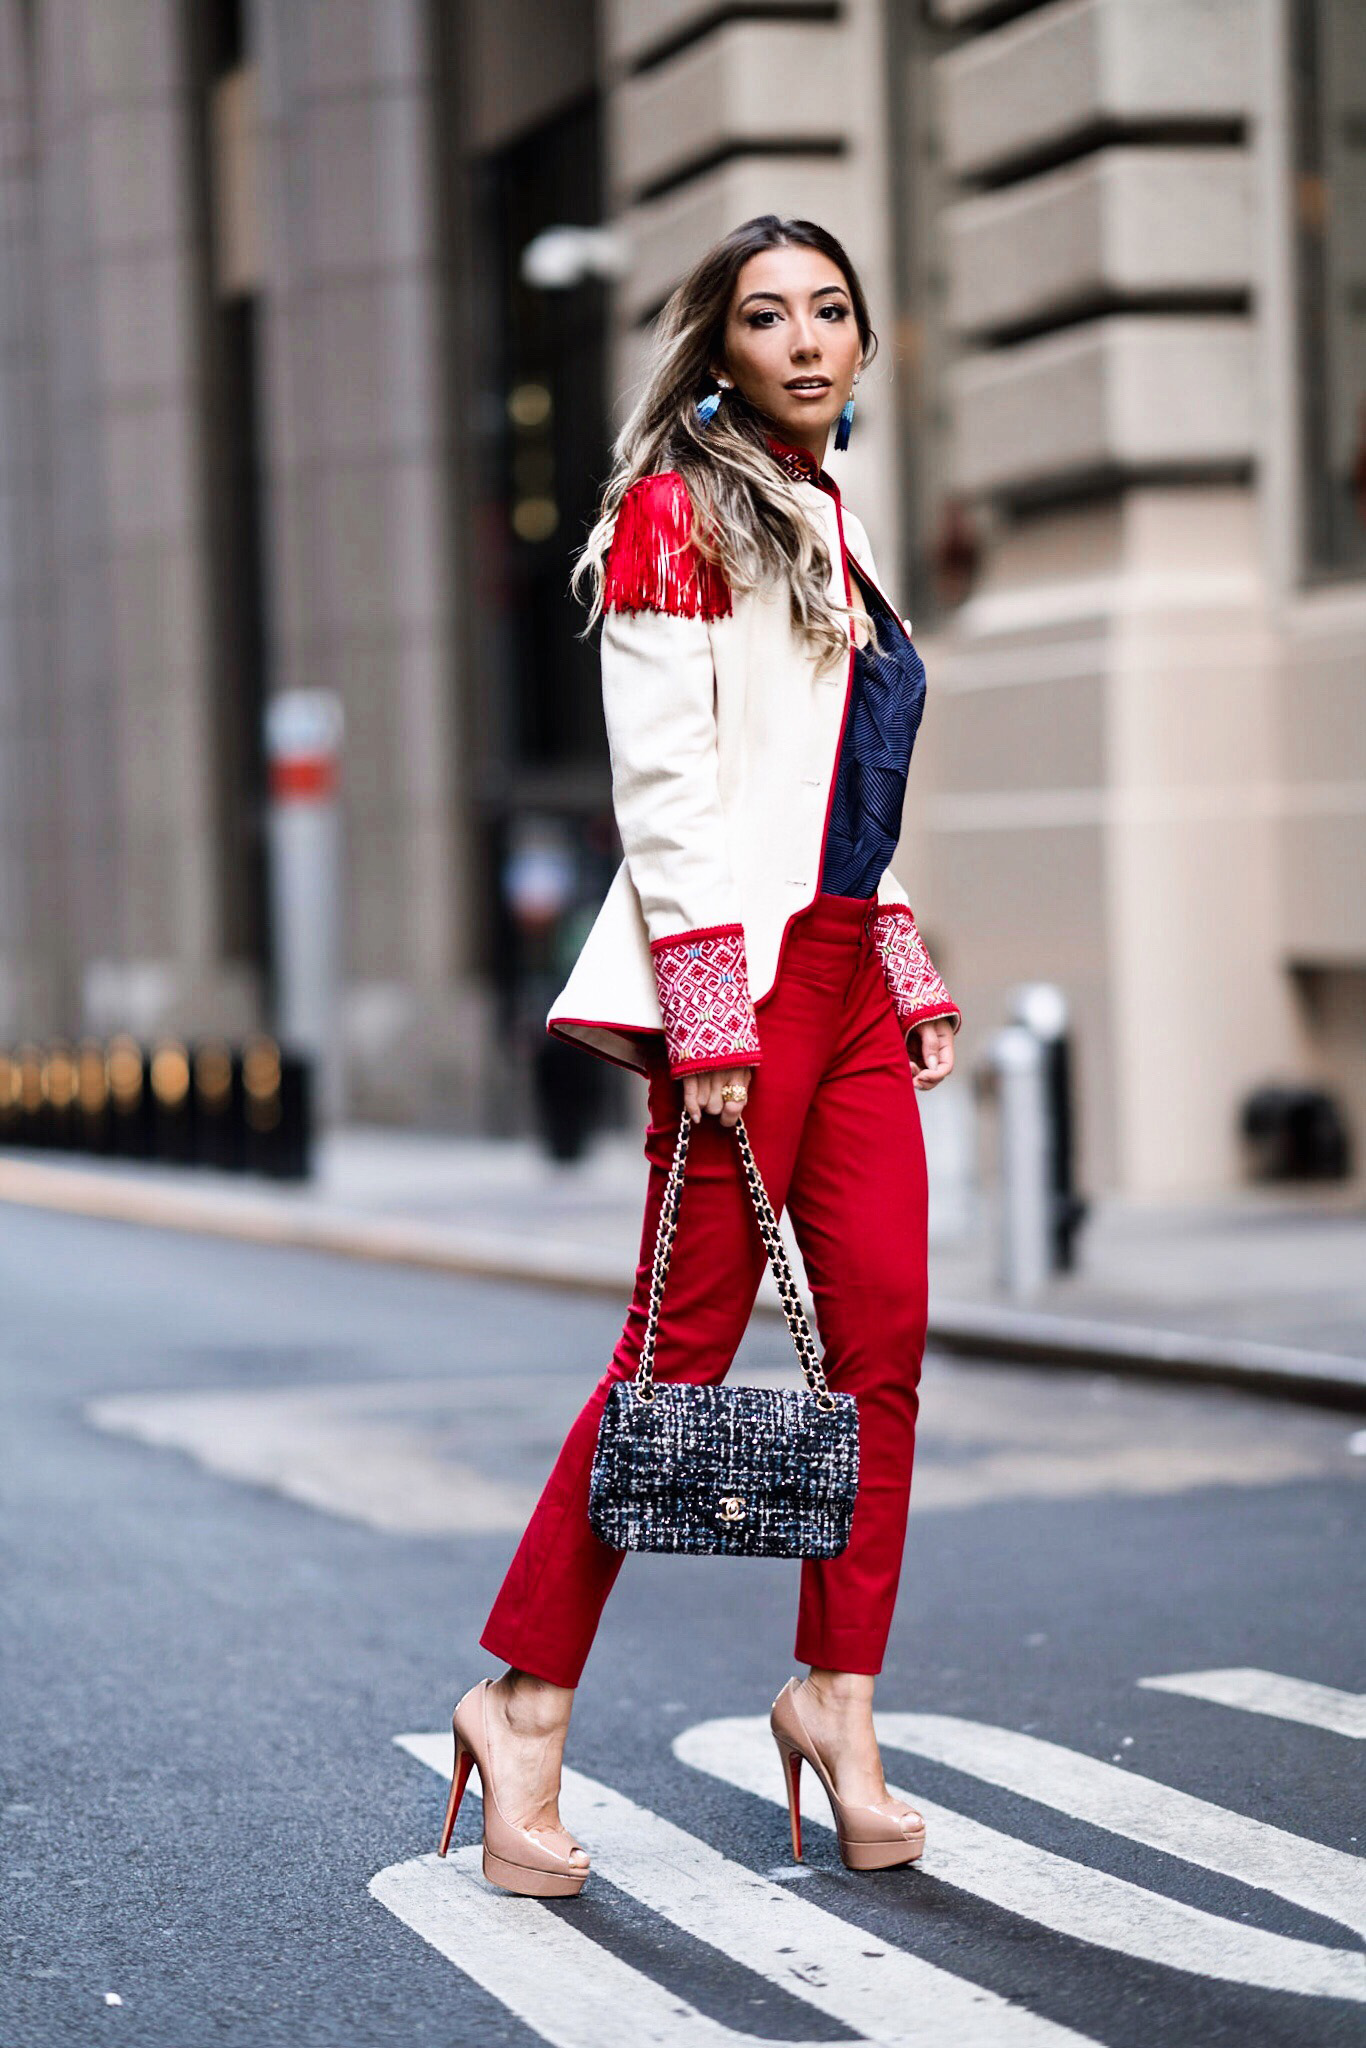 Ulia Ali   wearing Pablo Garibi, Chanel and Christian Louboutin. One of my favorite NYFW looks this year!